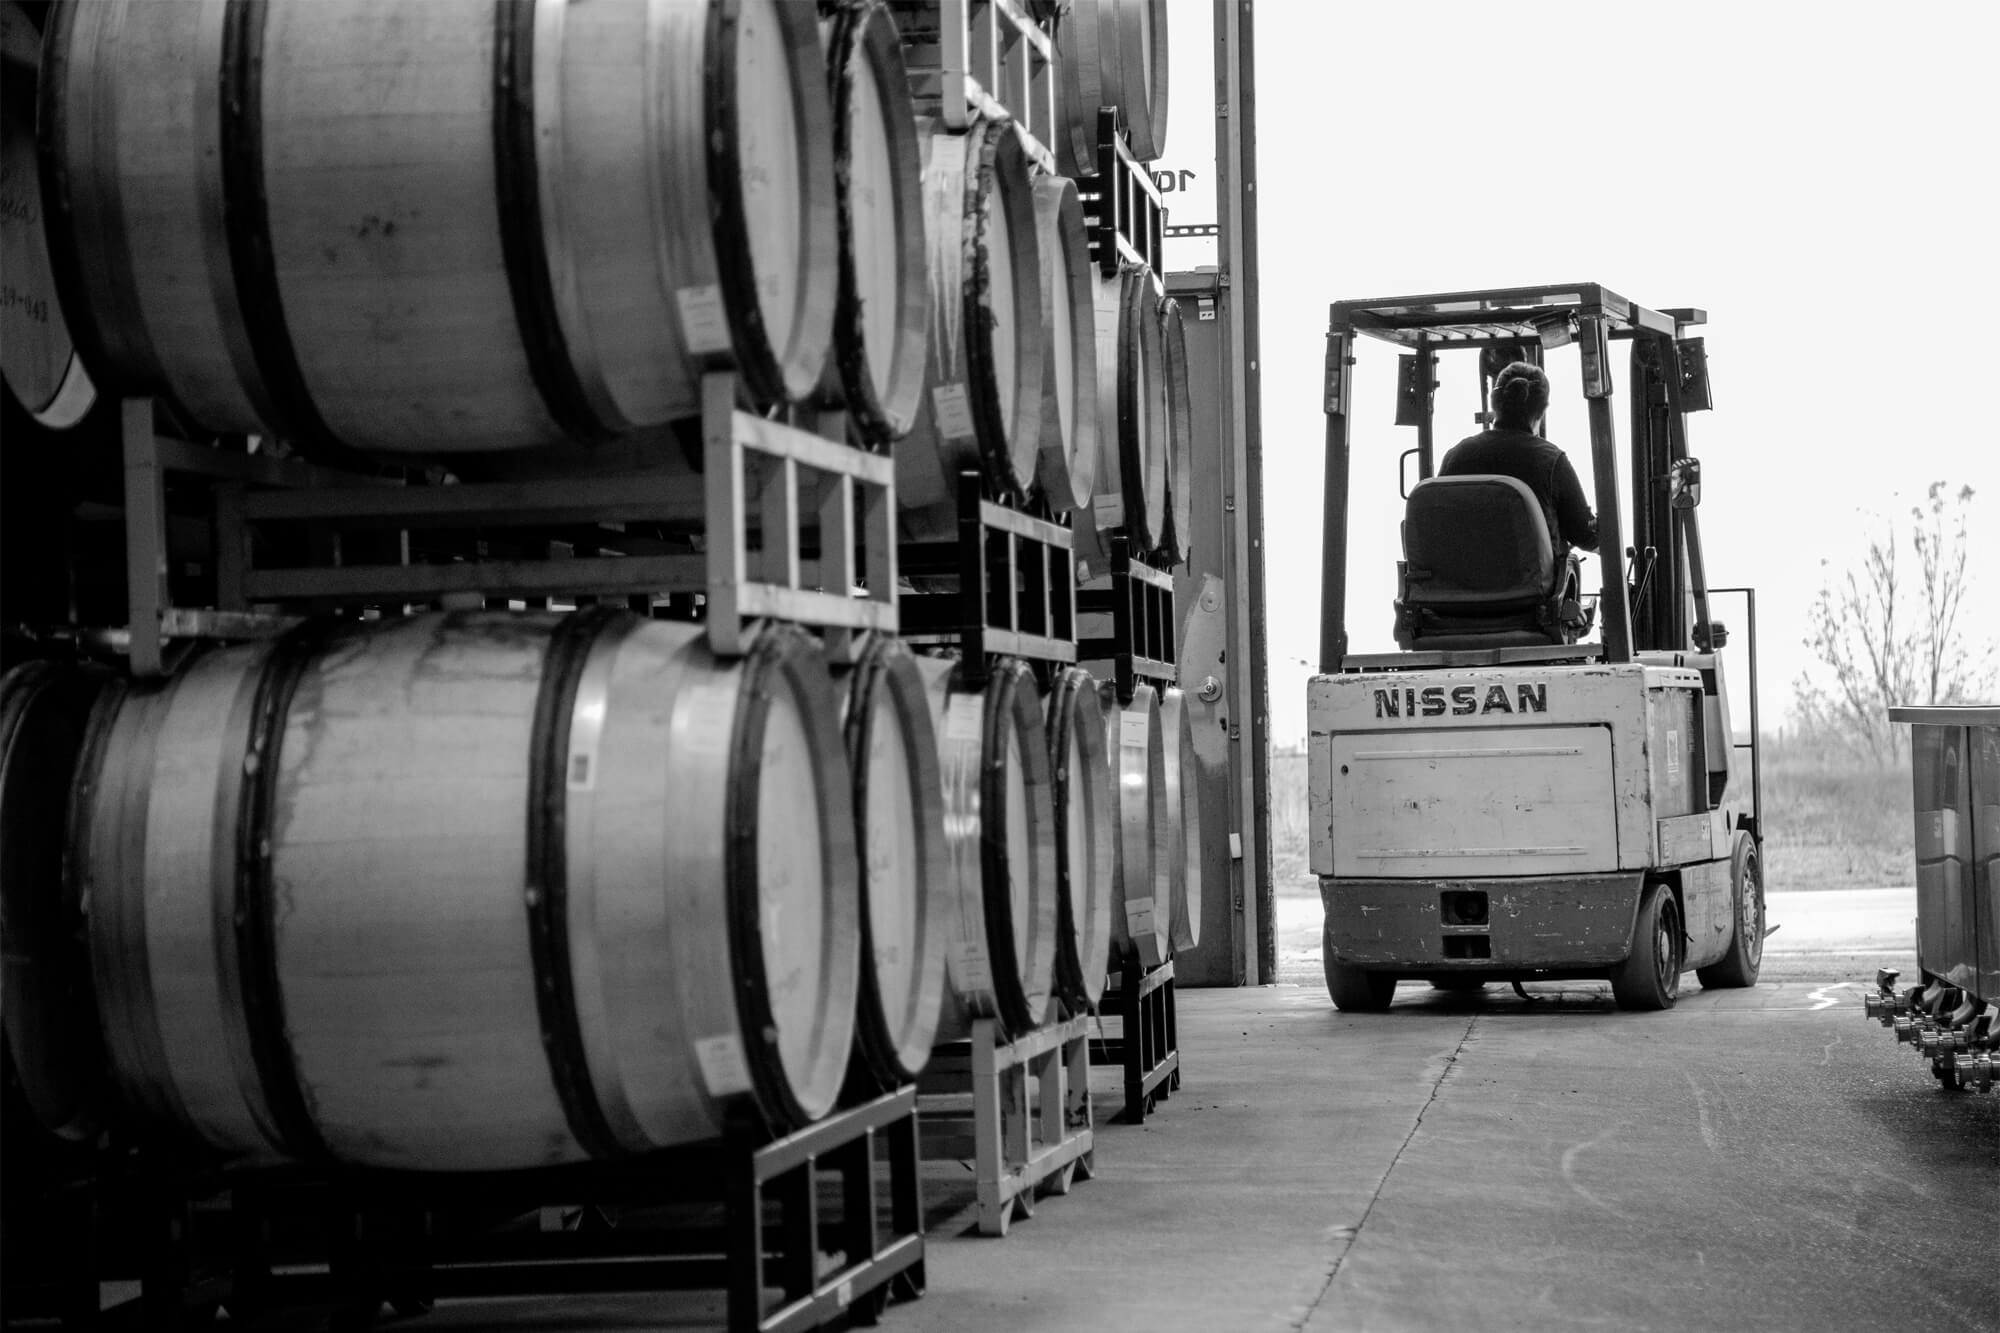 Nissan Forklift at the Facility